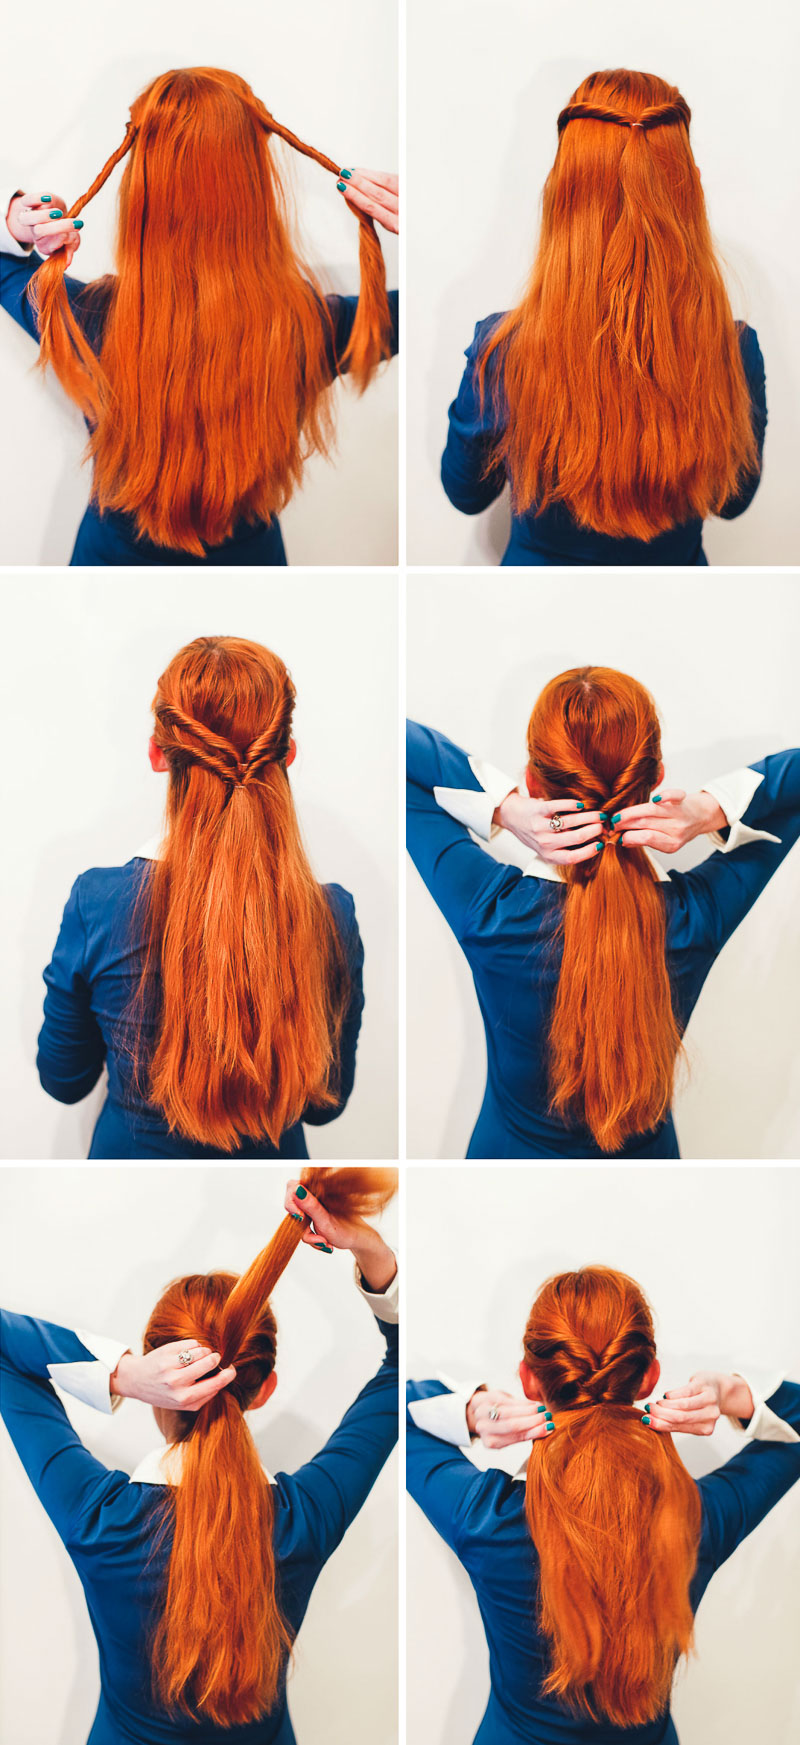 Step One Take A Small Section Of Hair From Both Sides The Head And Twist Them I Like To Inwards Tie Together In Ponytail